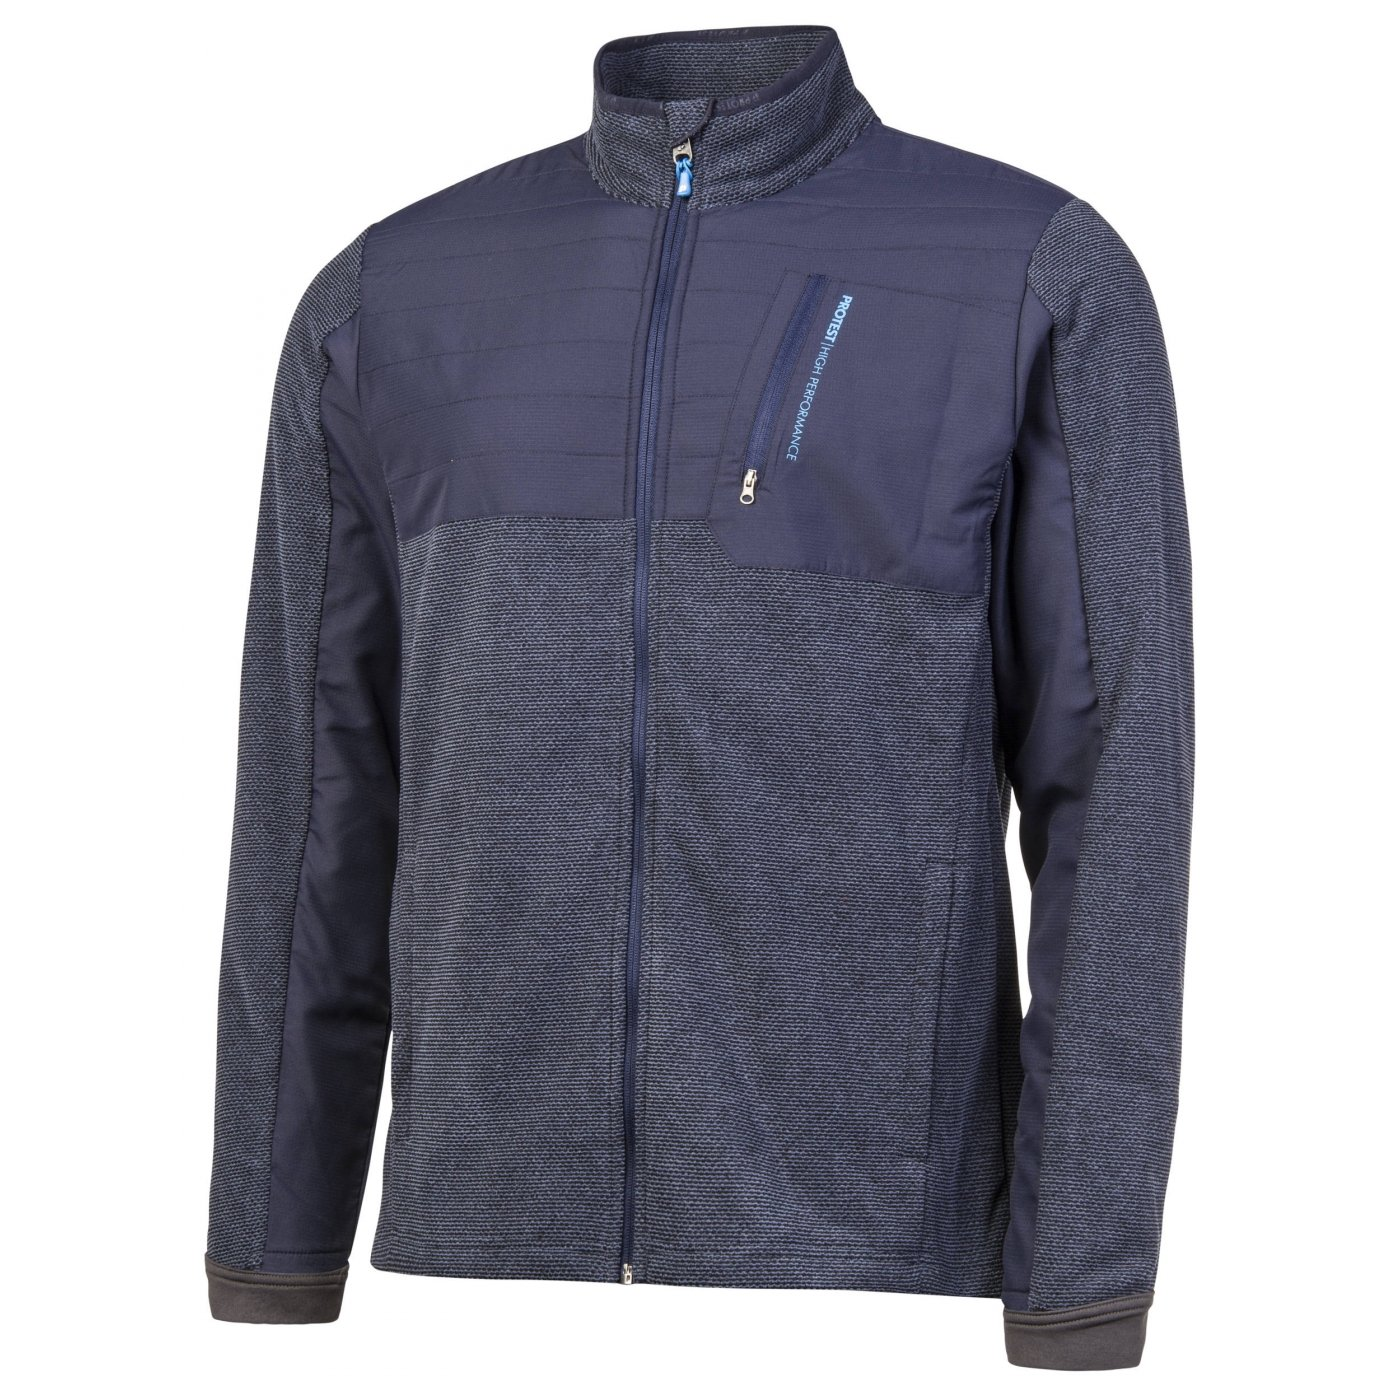 Protest WISLEY Full Zip Top